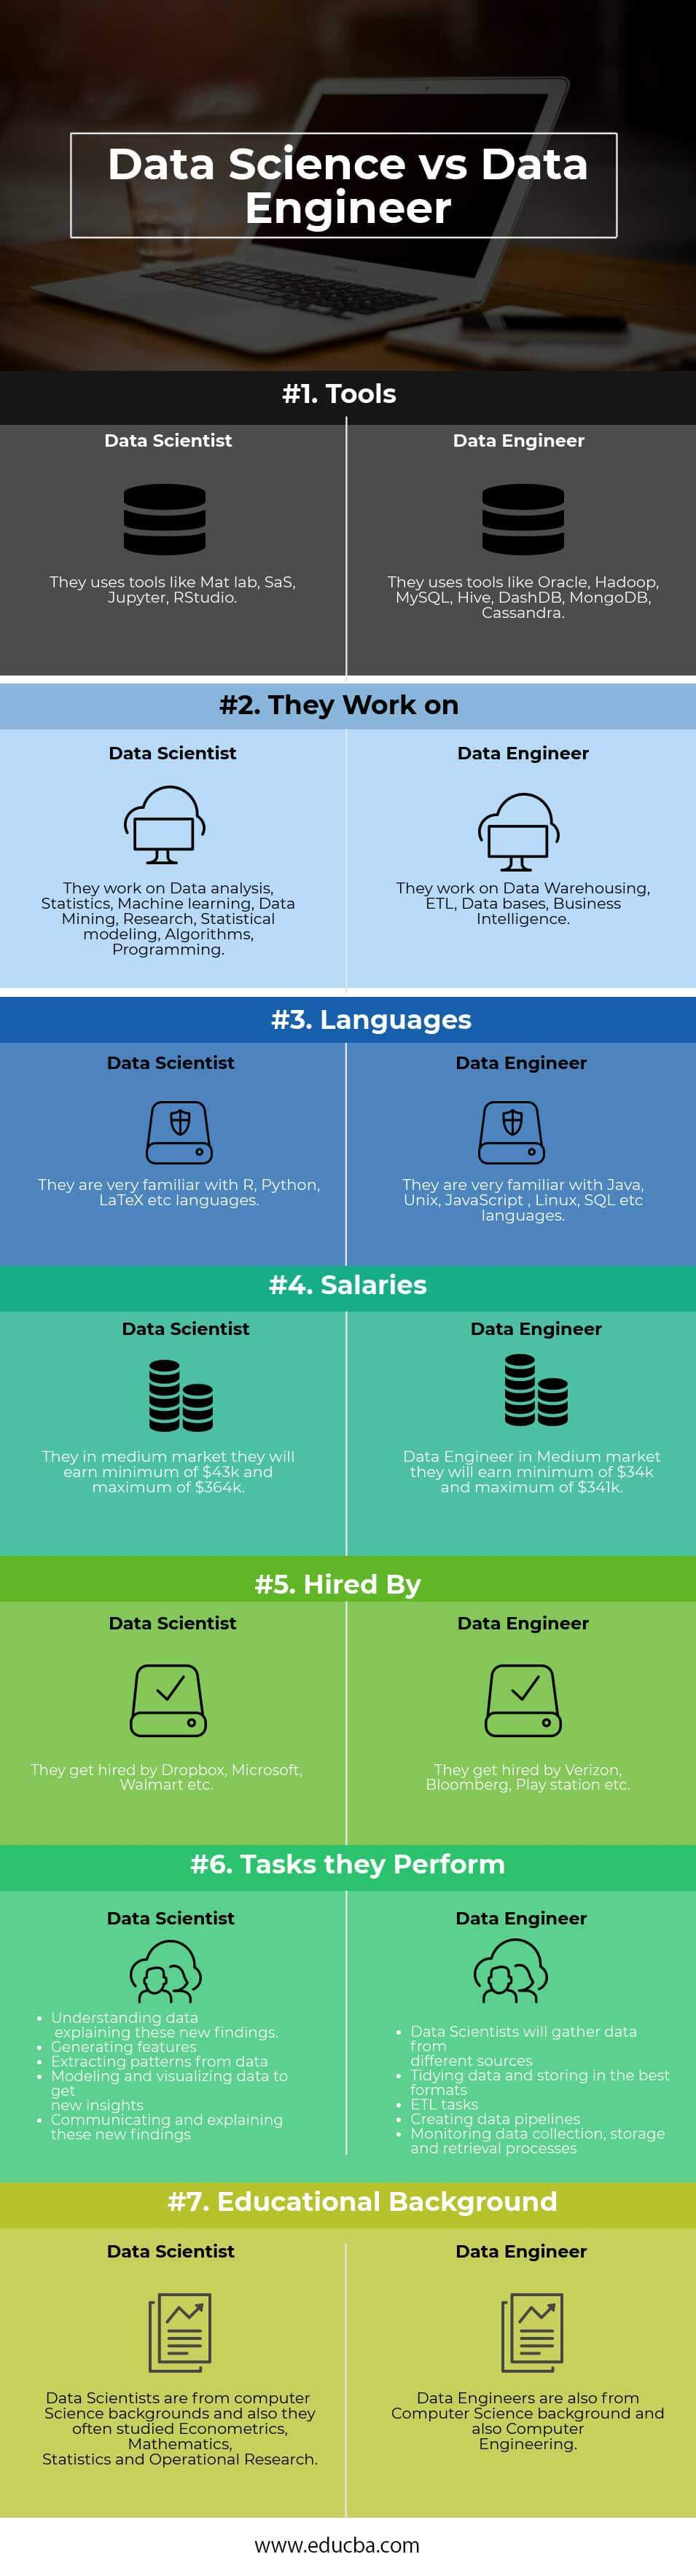 Data Scientist vs Data Engineer - 7 Amazing Comparisions